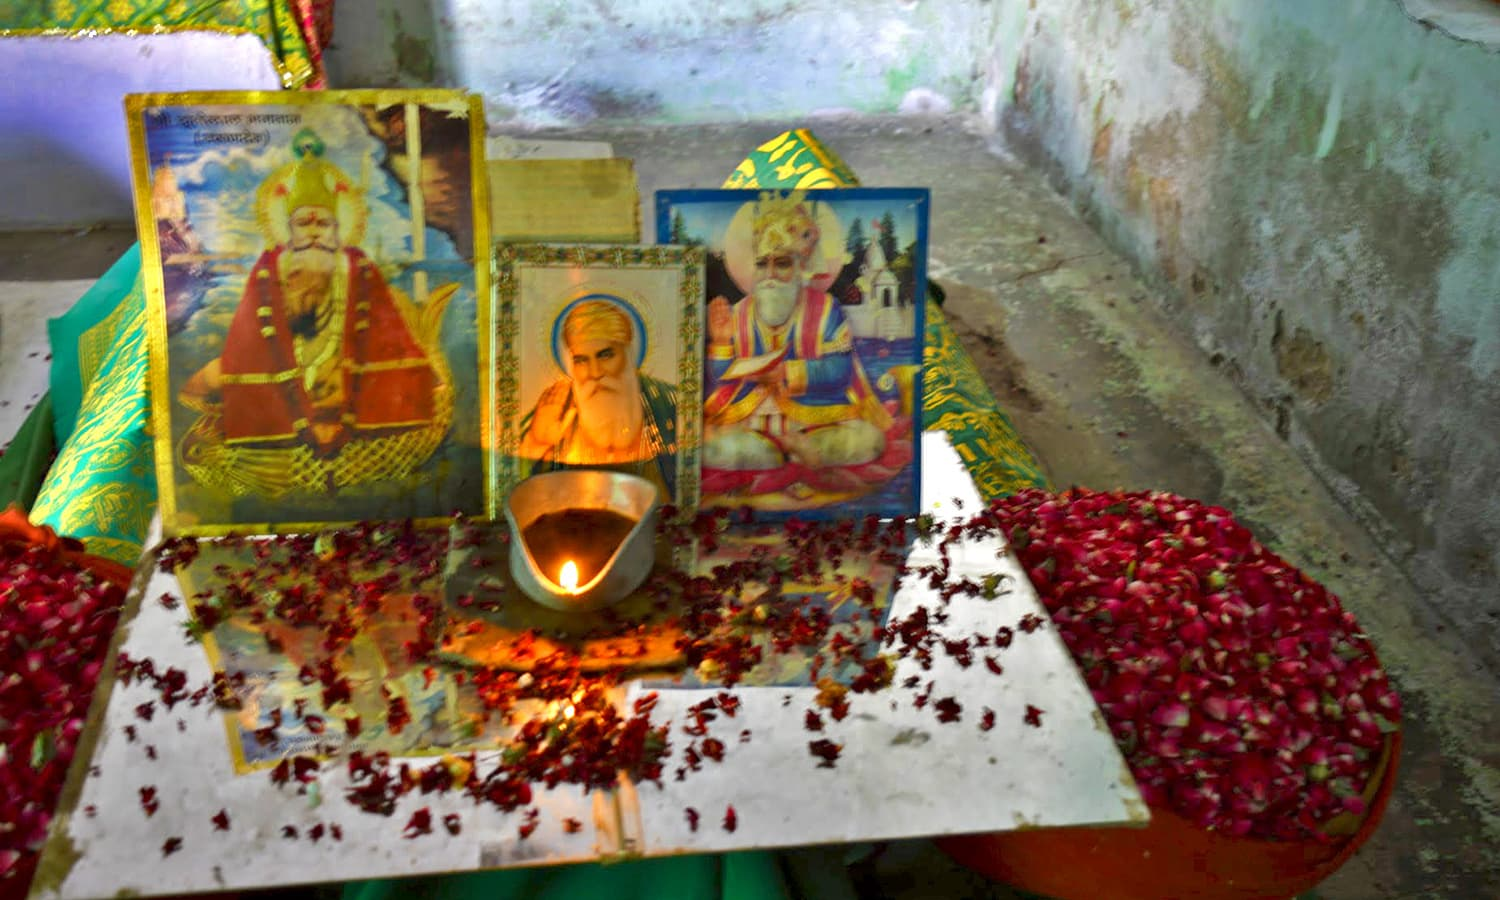 A candle is lit inside a room near the shrine.